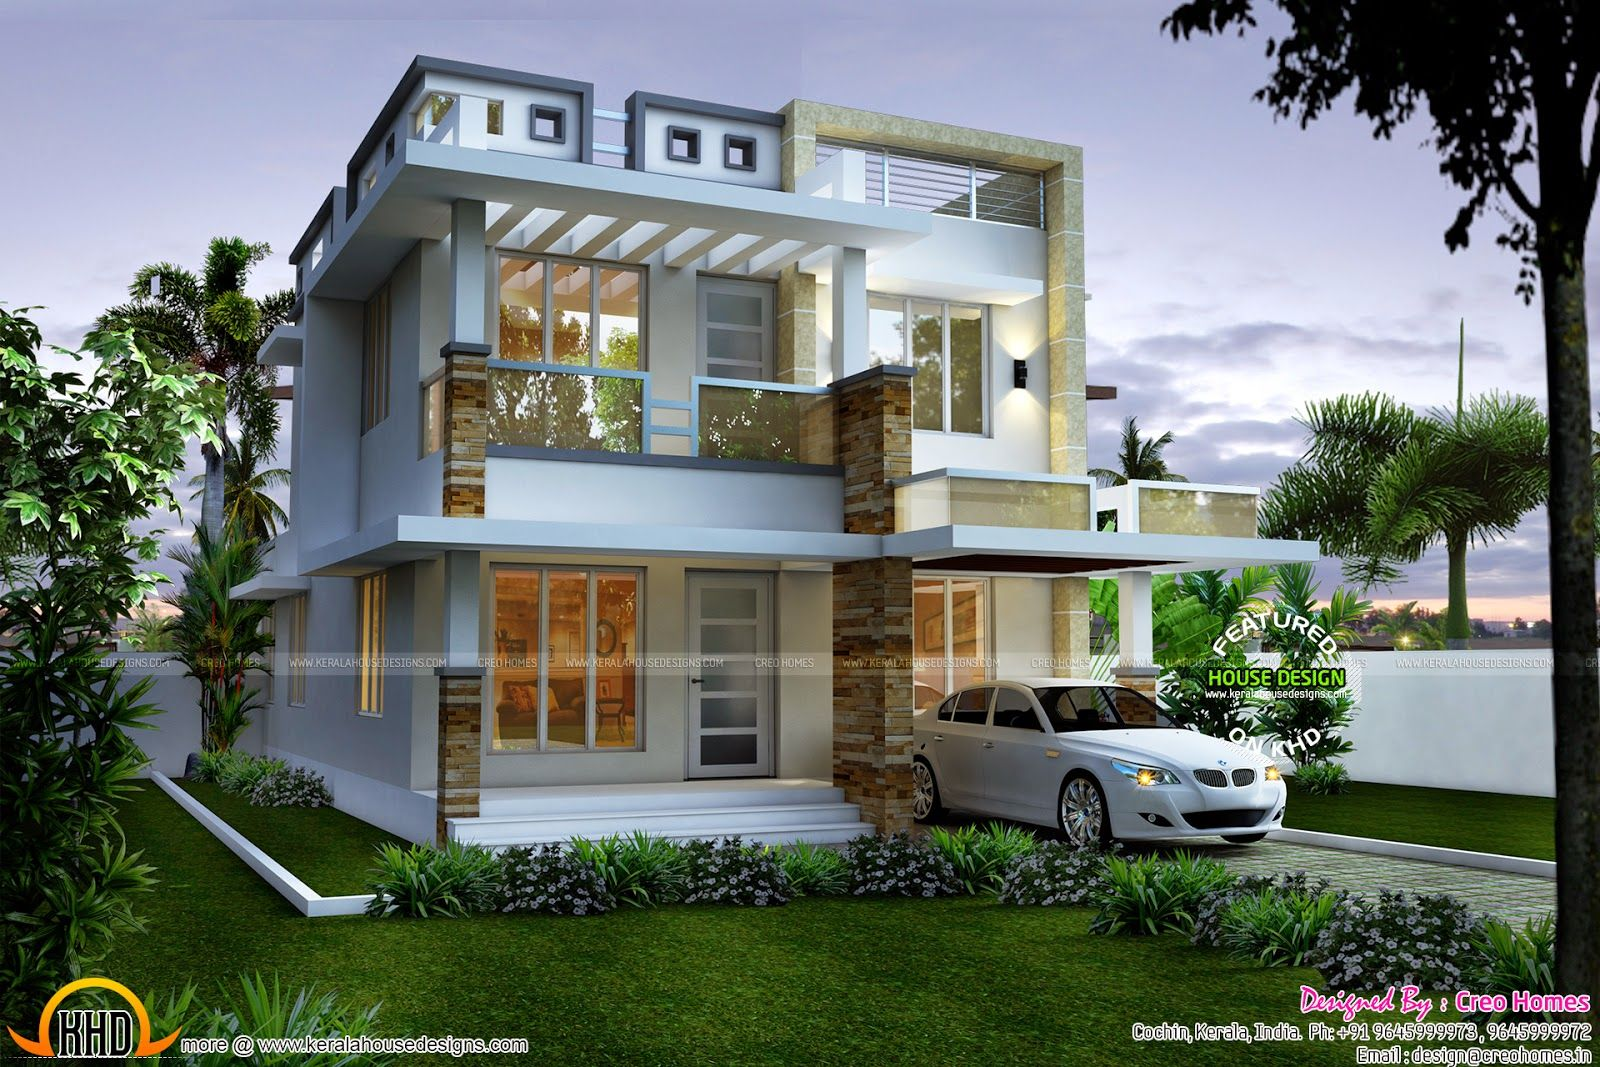 Kerala home design and floor plans | Kerala house design ...